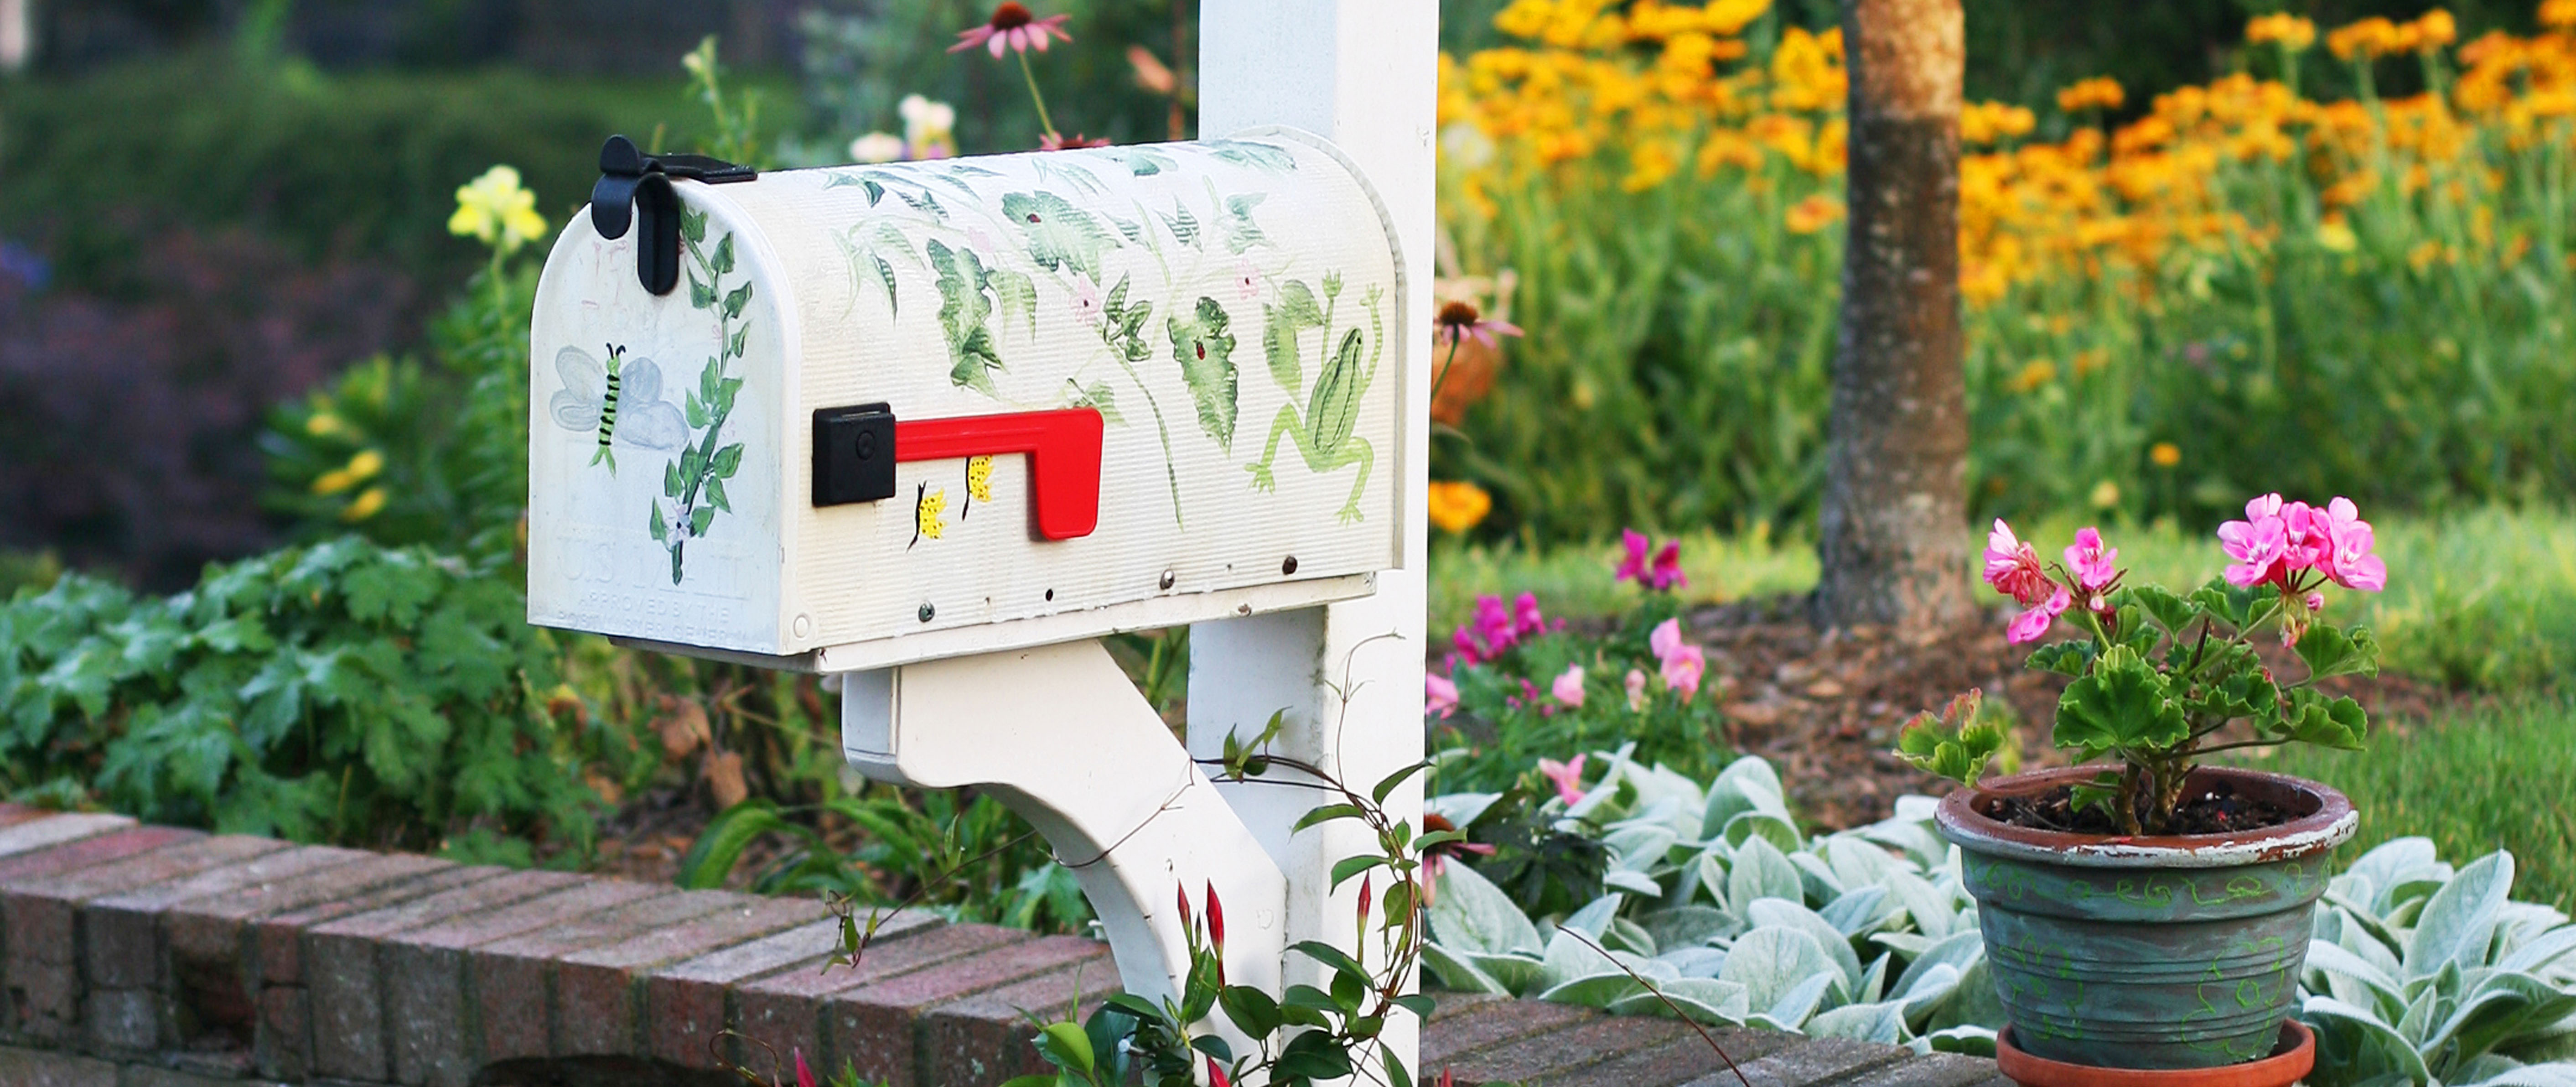 Creating A Mailbox Garden Is A Simple Way To Add Some Curb Appeal To Your  Home. Whether You Use Colorful Perennials Or Evergreen Plants, You Can  Create A ...